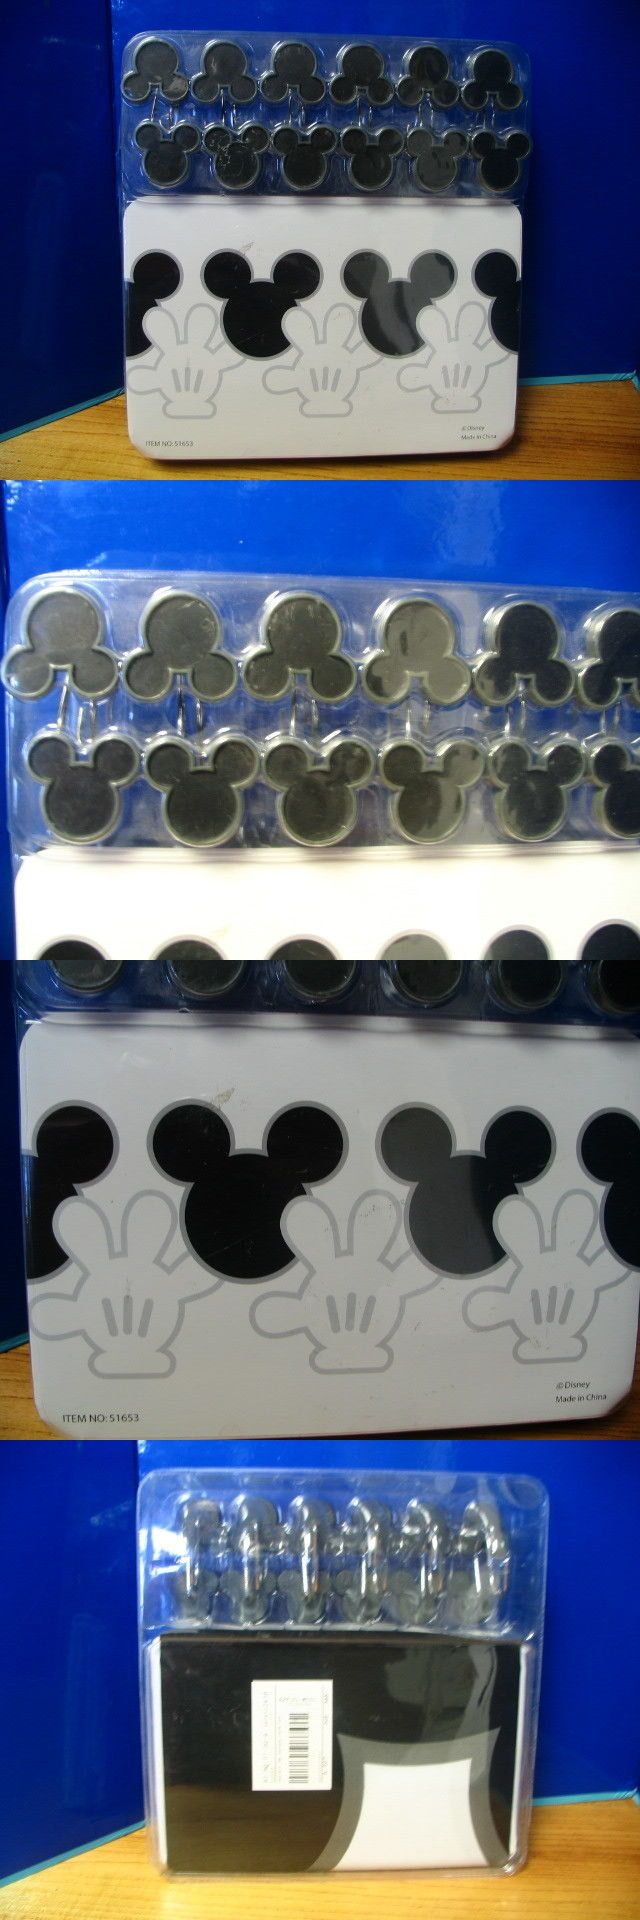 Shower Curtains 20441: Disney Store Mickey Mouse Shower Curtain And Hooks New In Package -> BUY IT NOW ONLY: $125 on eBay!